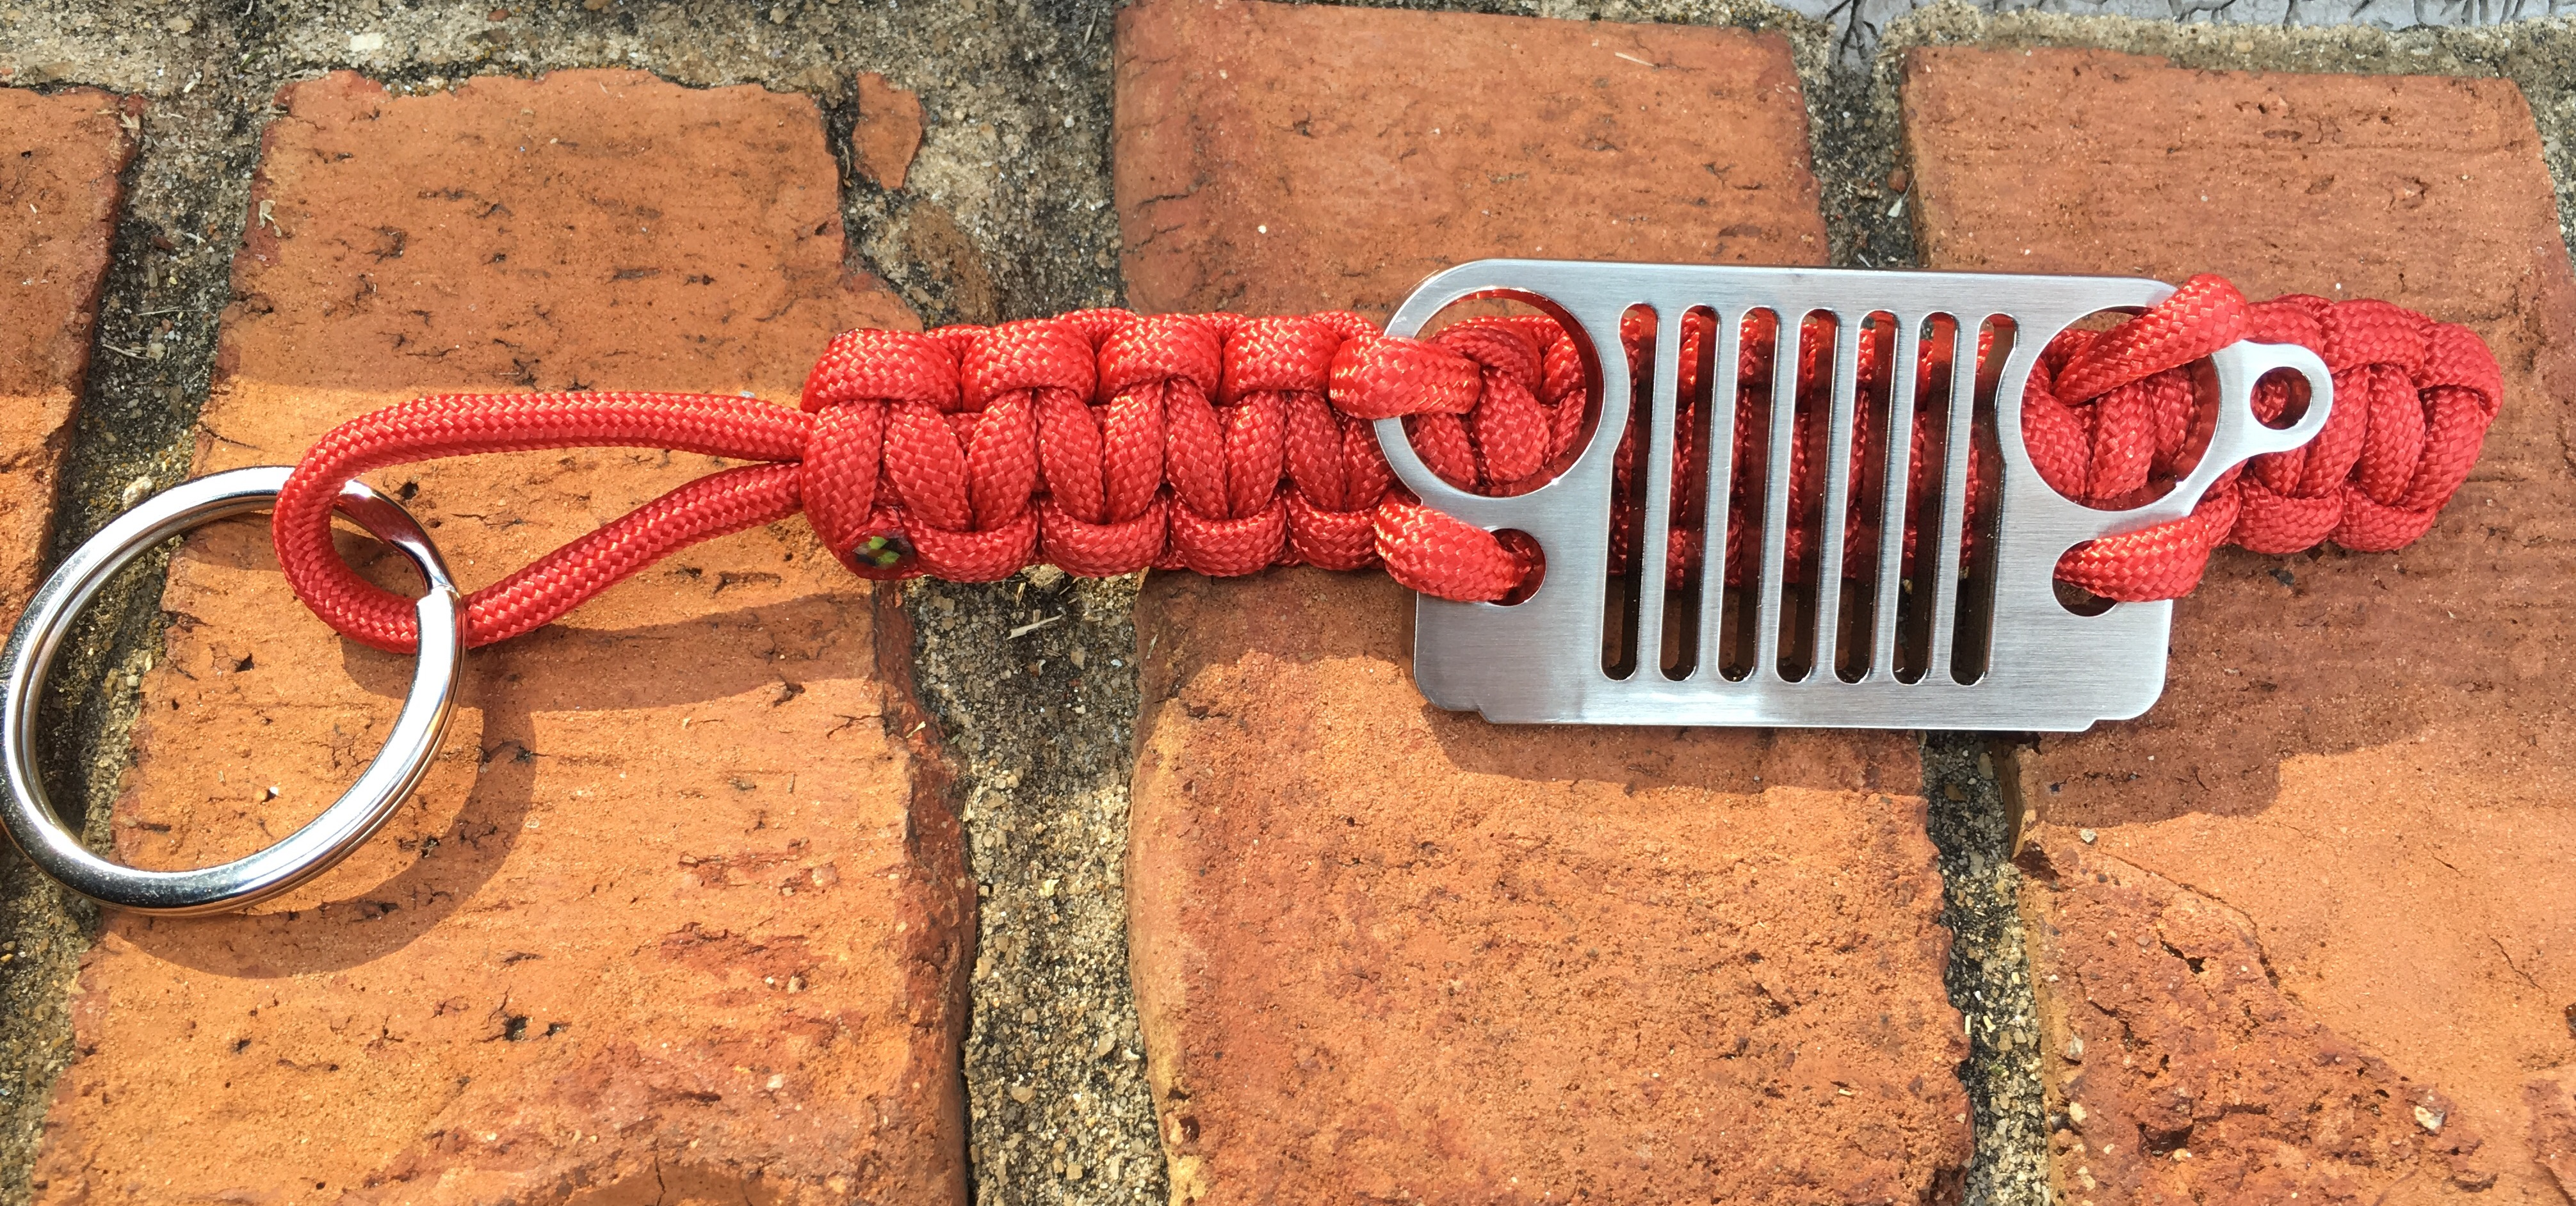 Jeep CJ Grille Paracord Keychain in Red